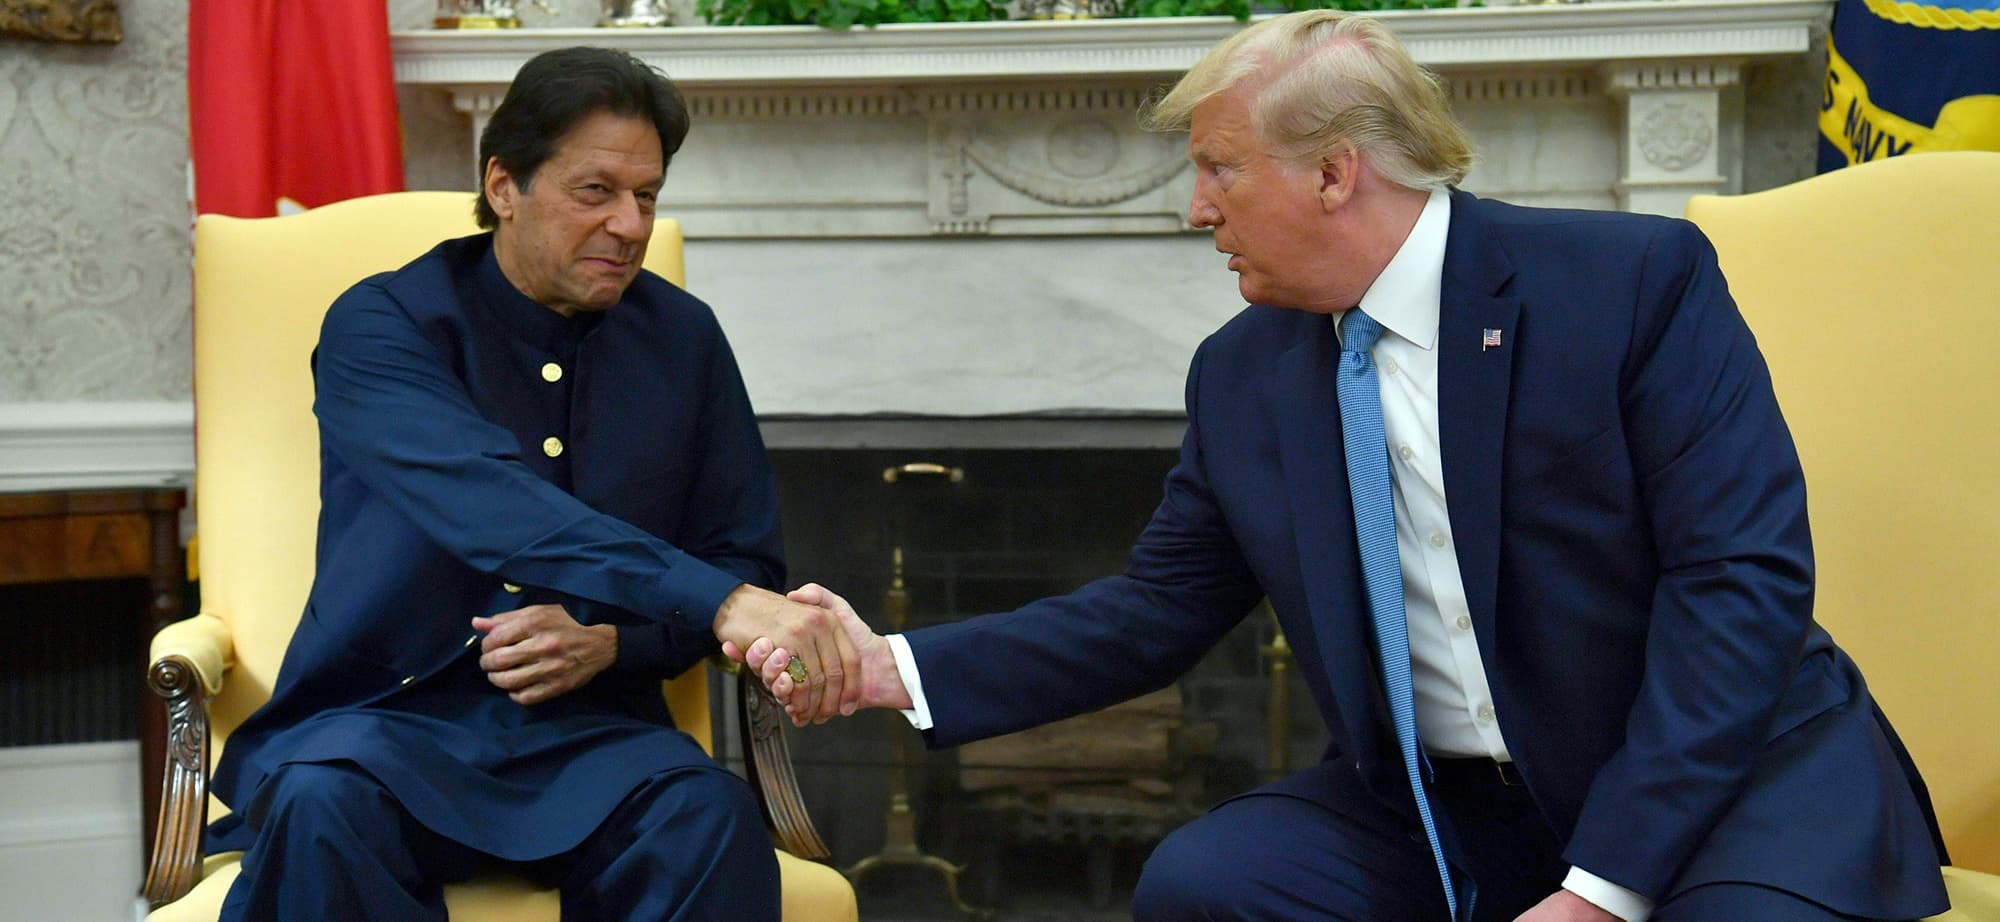 US President Donald Trump meets with Pakistani Prime Minister Imran Khan (L) in the Oval Office at the White House in Washington, DC, on July 22, 2019. (Photo by Nicholas Kamm / AFP) — AFP or licensors